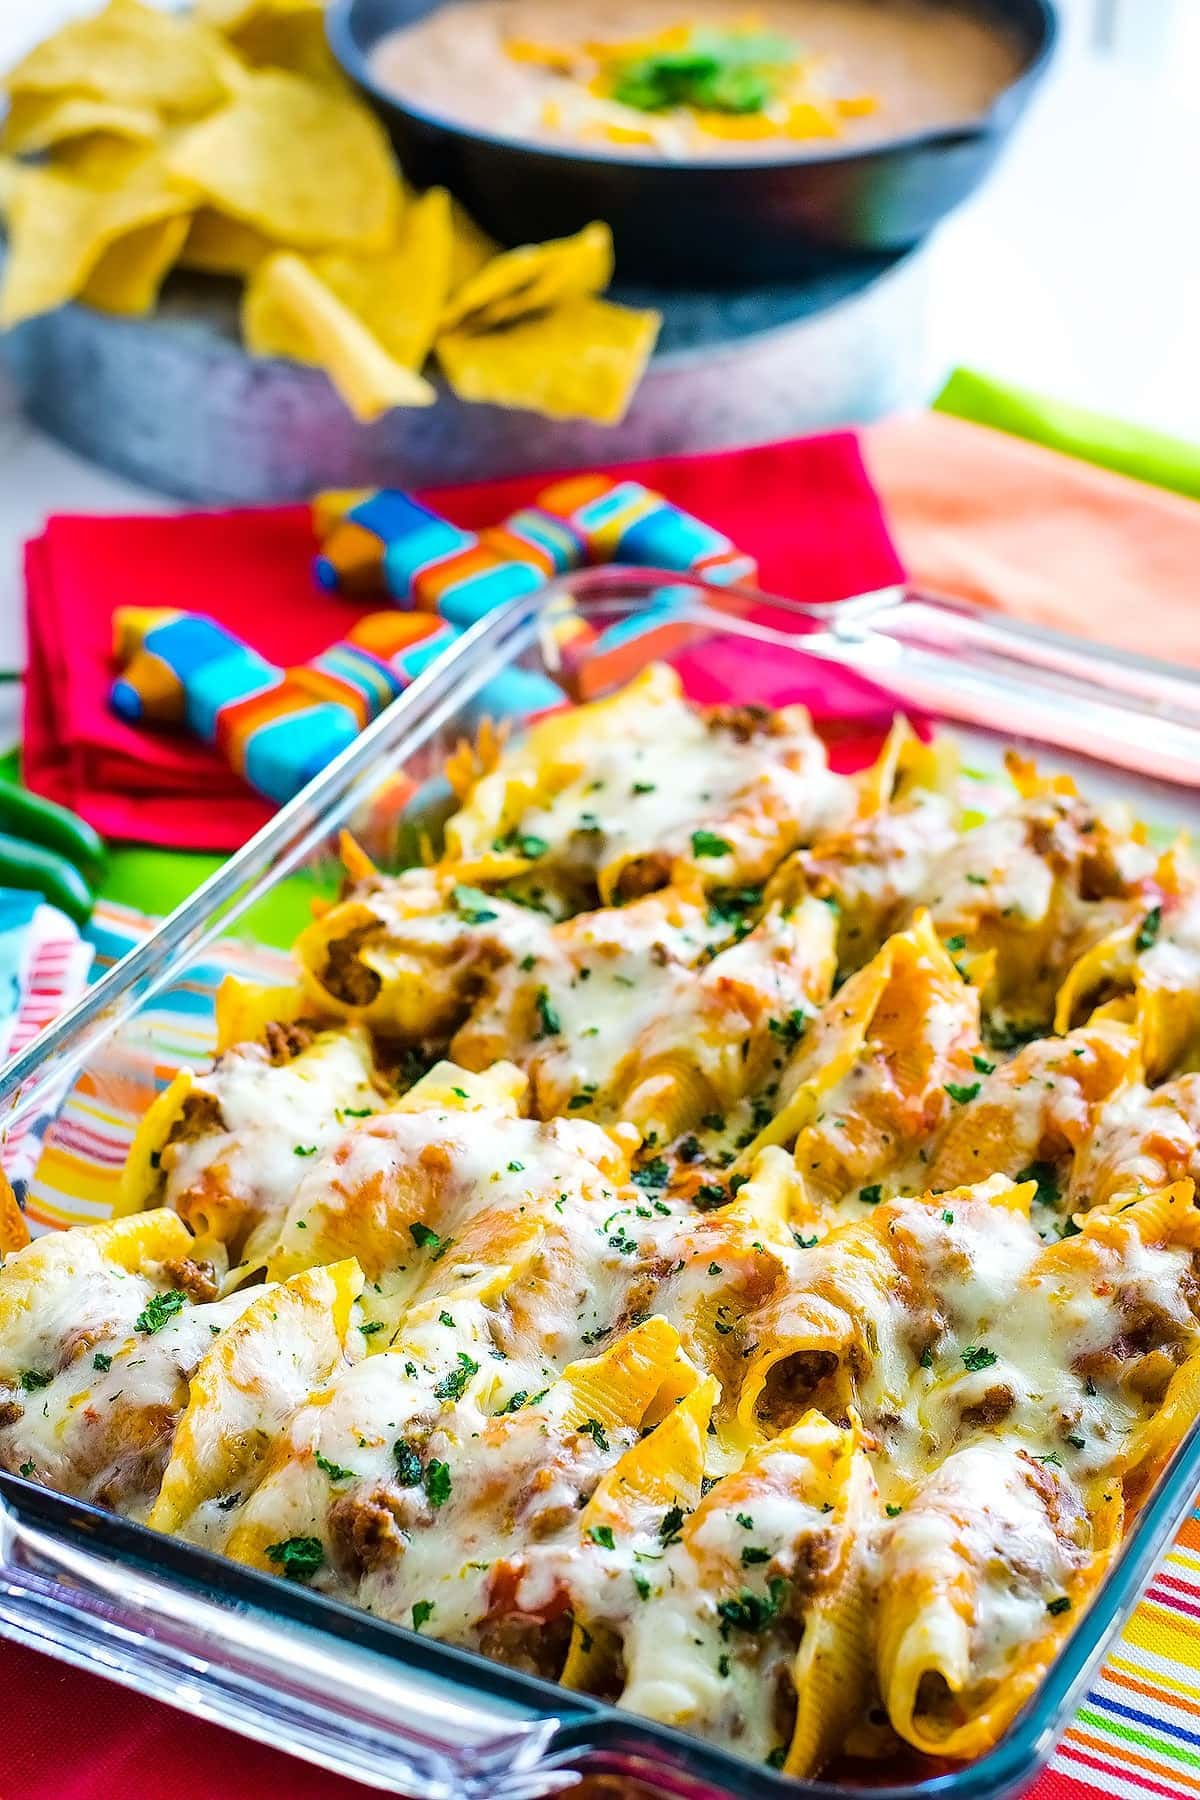 Mexican stuffed shells topped with melted pepperjack cheese in a casserole dish